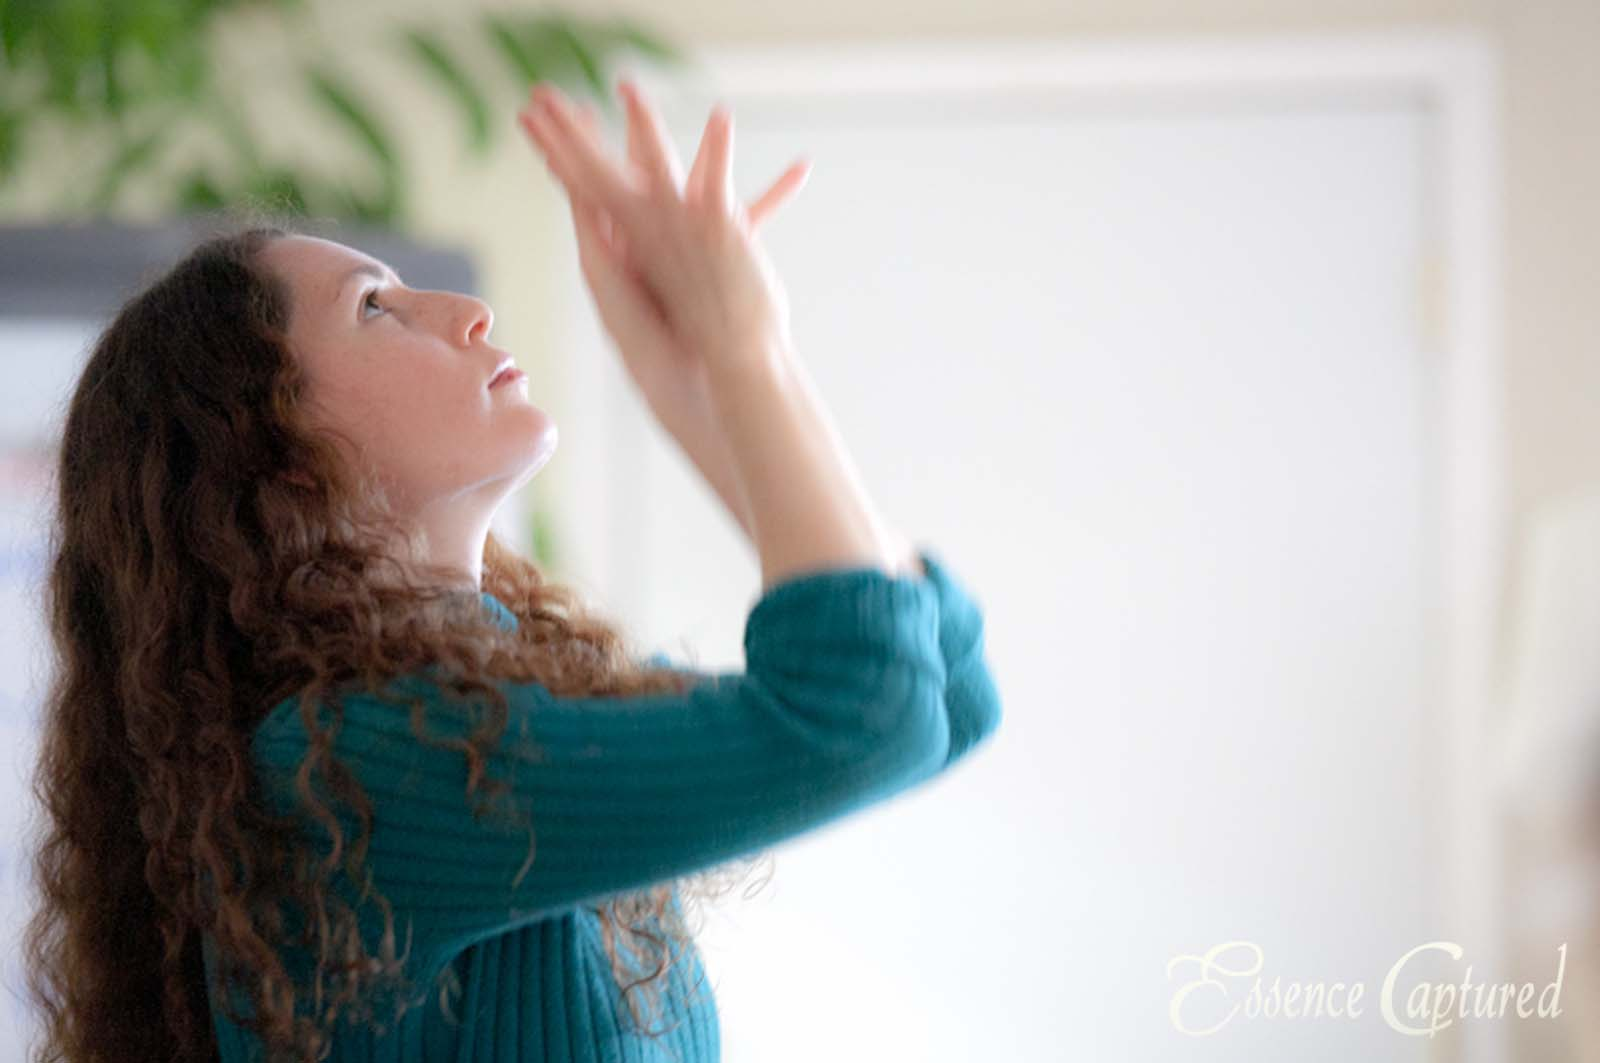 woman in interpretive dance free movement hands upward